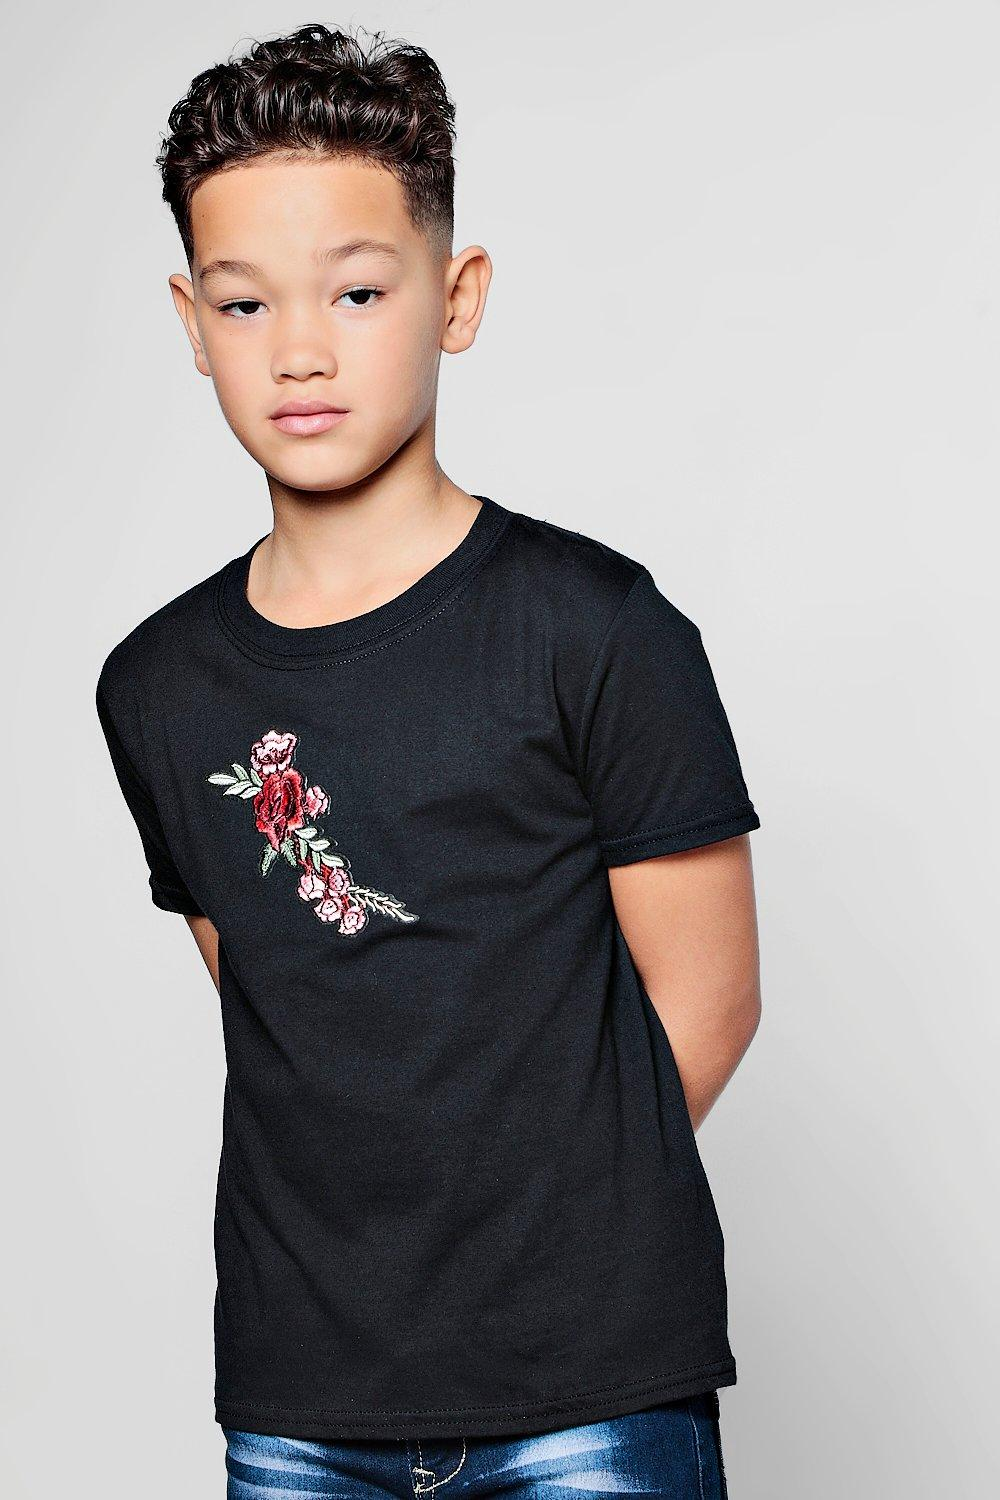 060f9a23 ... Floral Embroidered T-Shirt. Hover to zoom